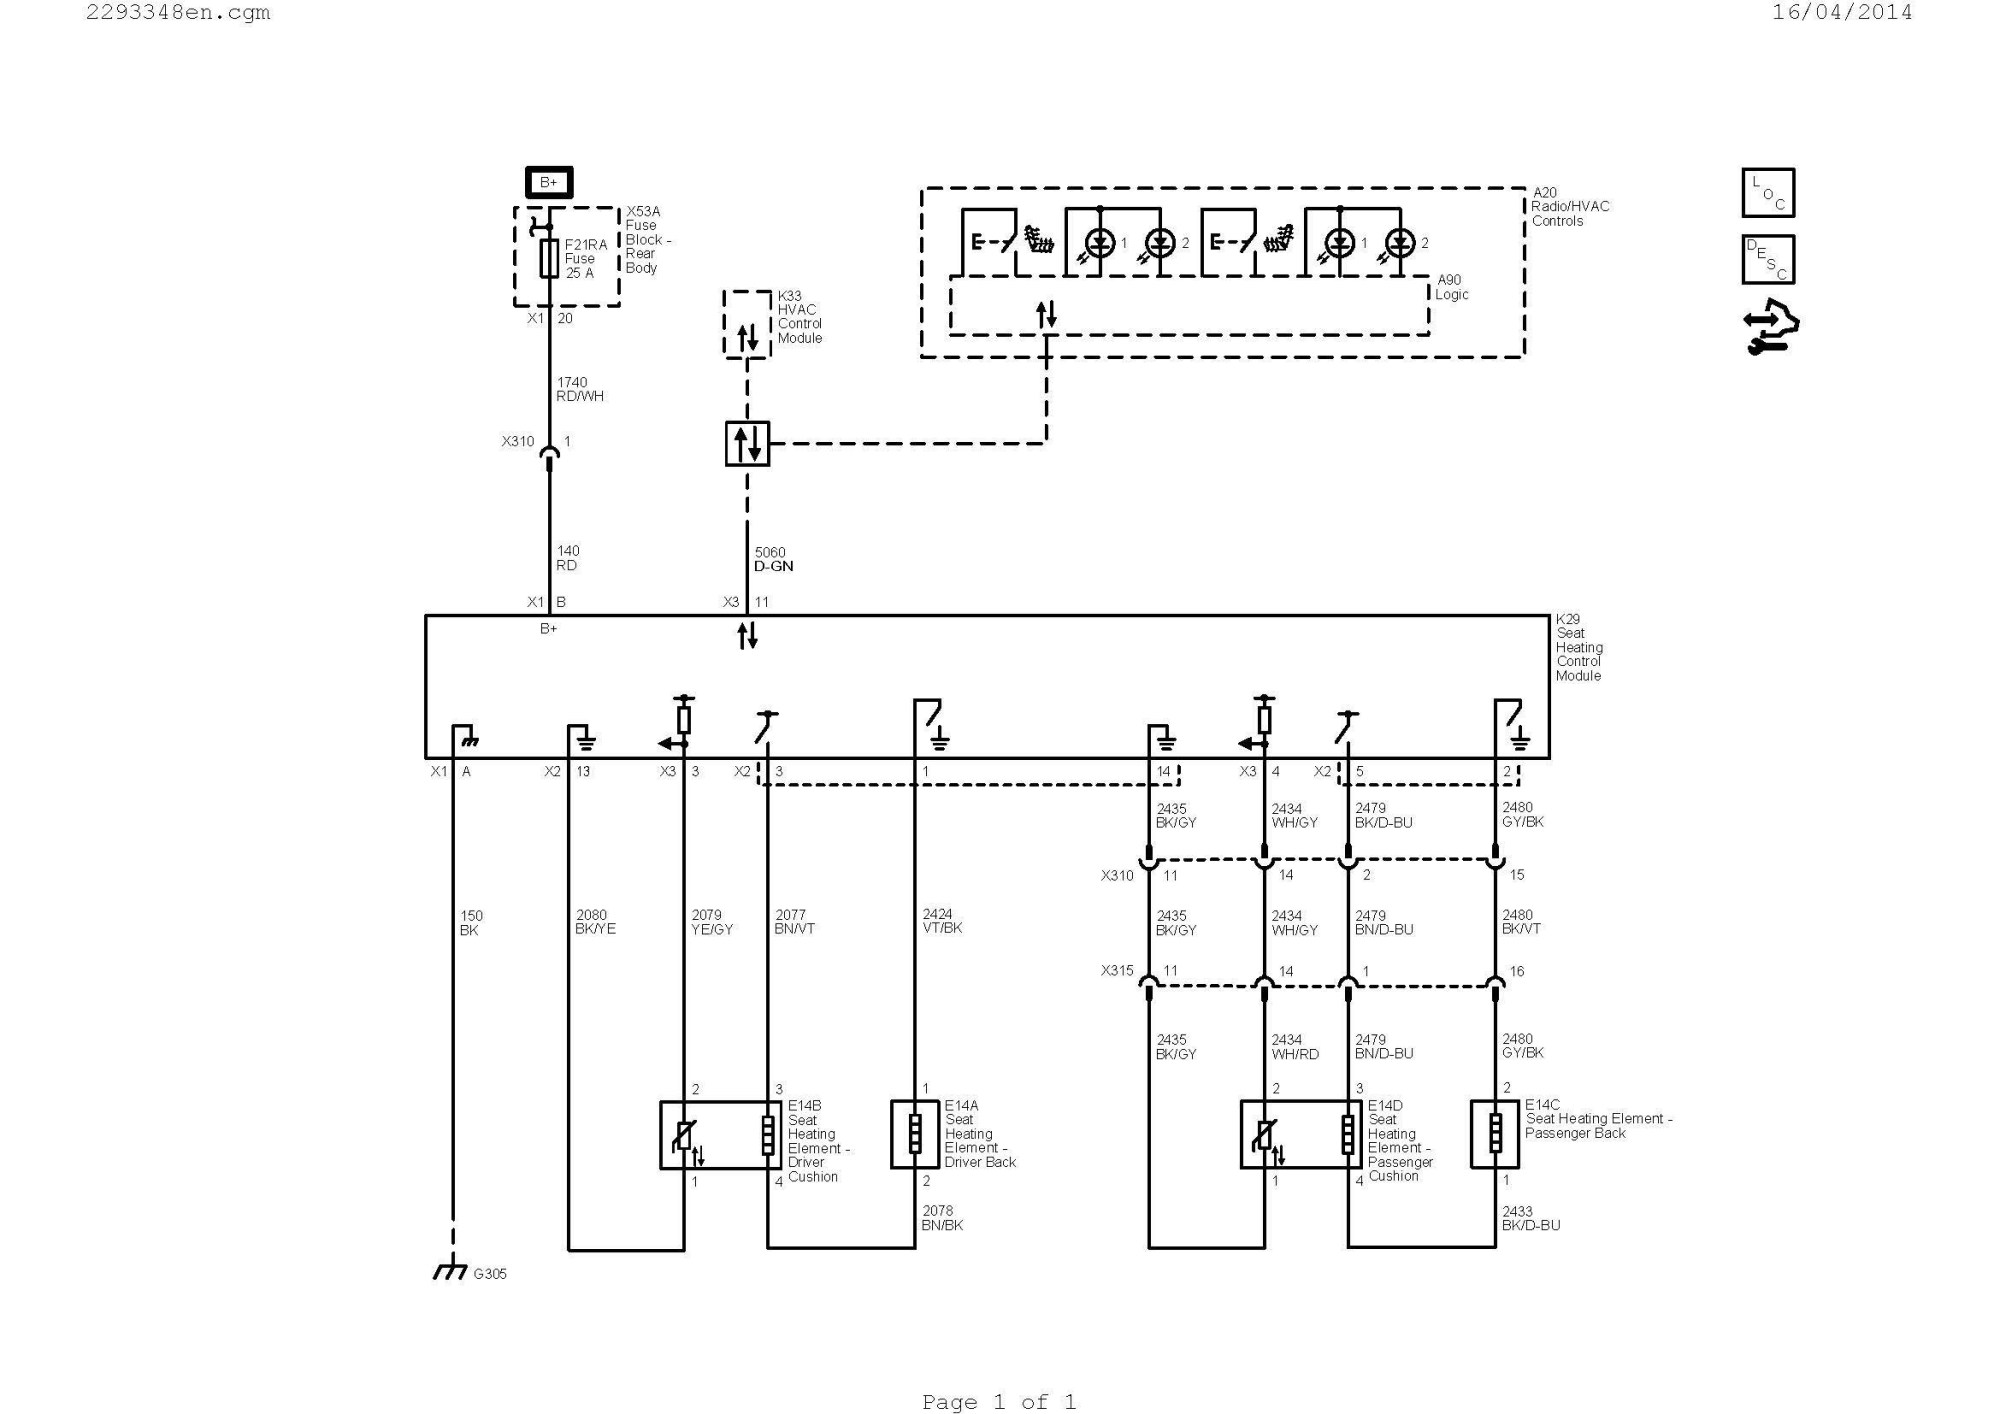 hight resolution of simple diagram for hvac data diagram schematic hvac paintings search result at paintingvalley com simple diagram